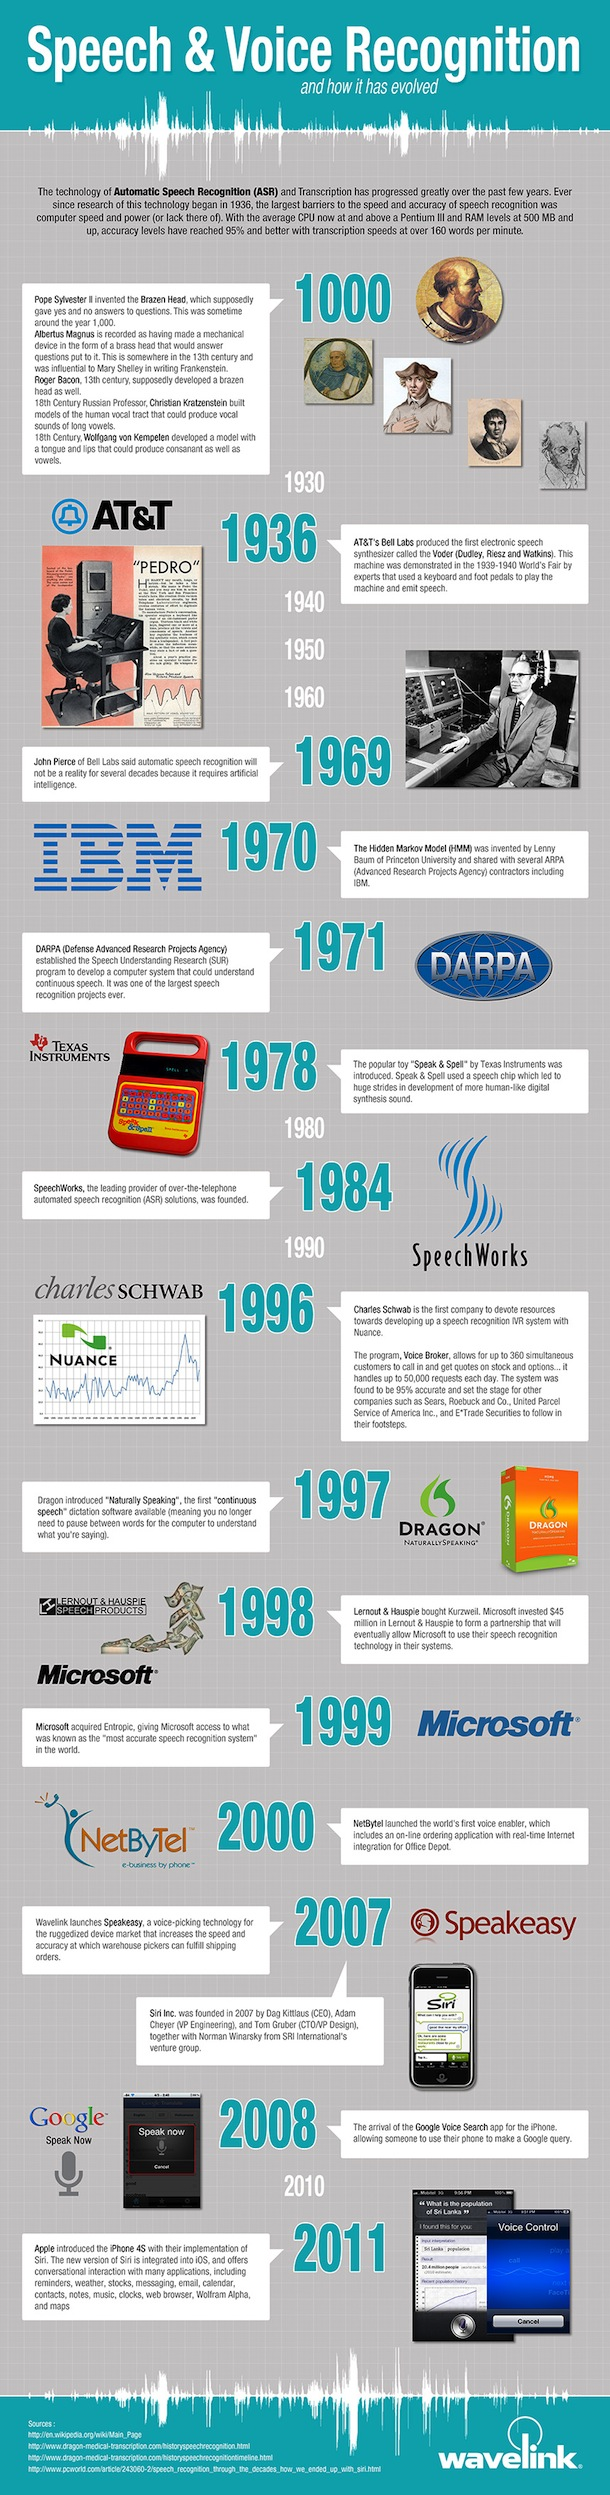 Speech-And-Voice-Recognition-Evolution-infographic